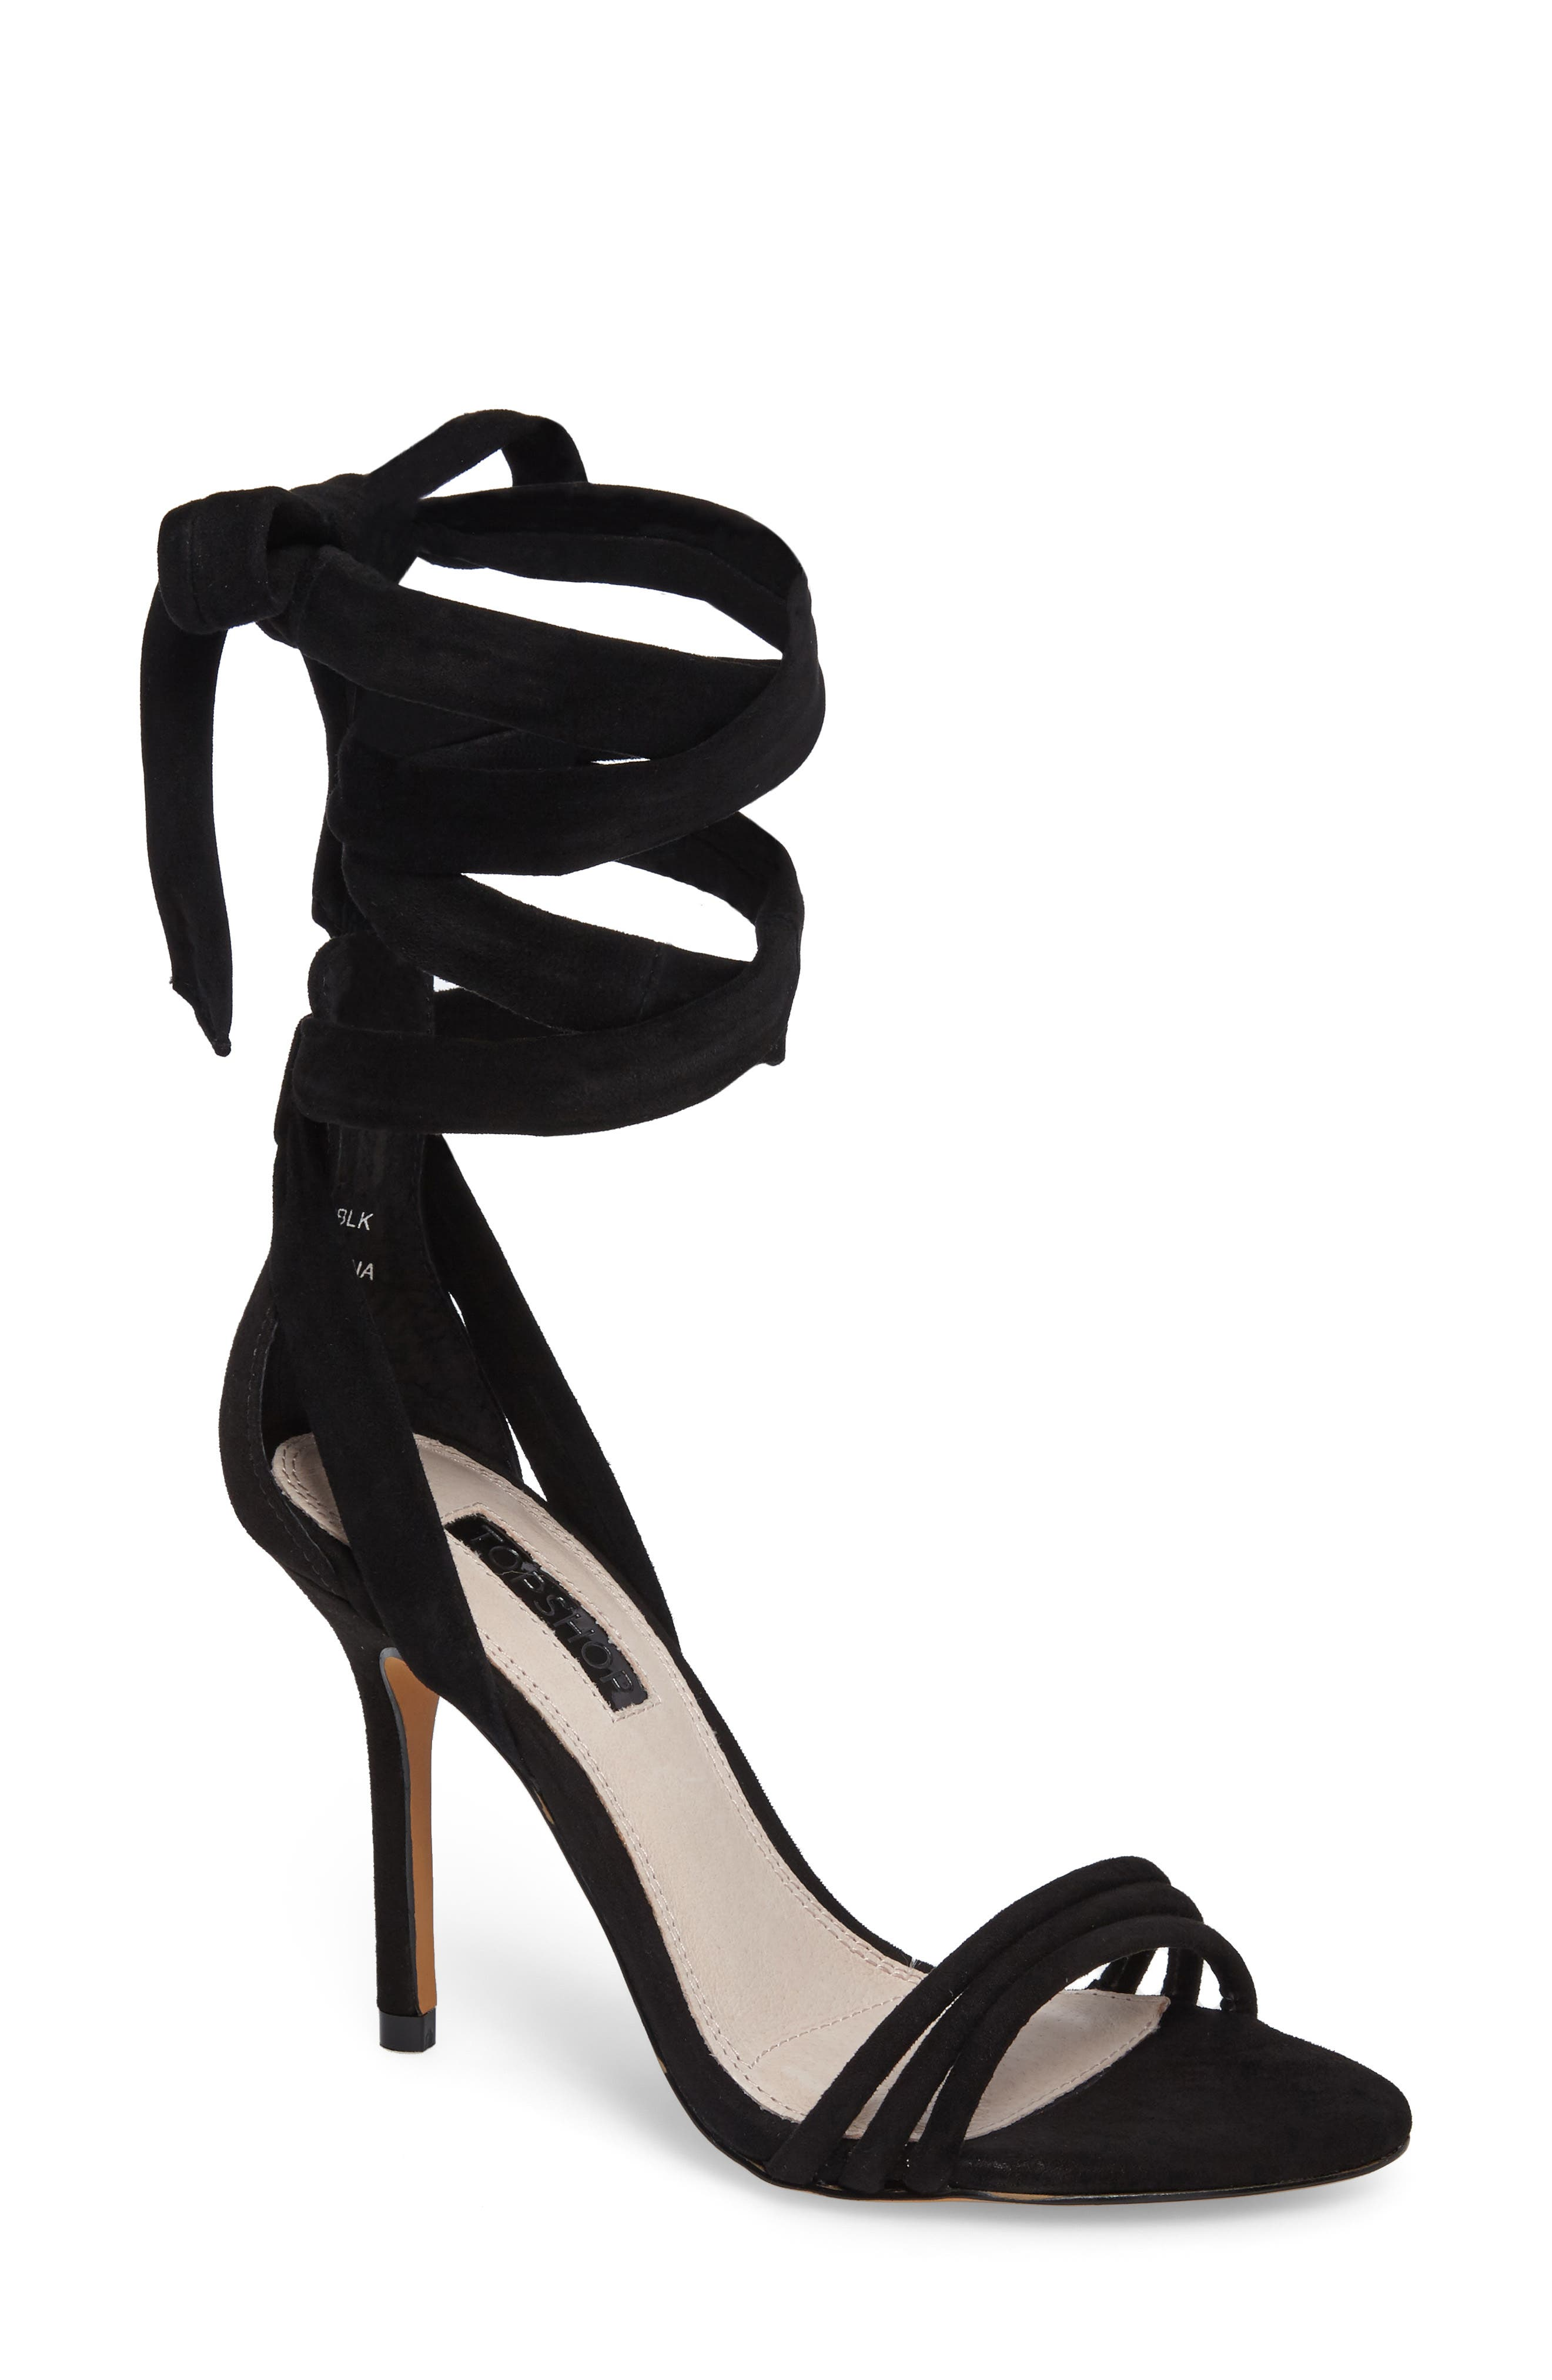 TOPSHOP Ramona Ankle Wrap Sandal, Main, color, 001